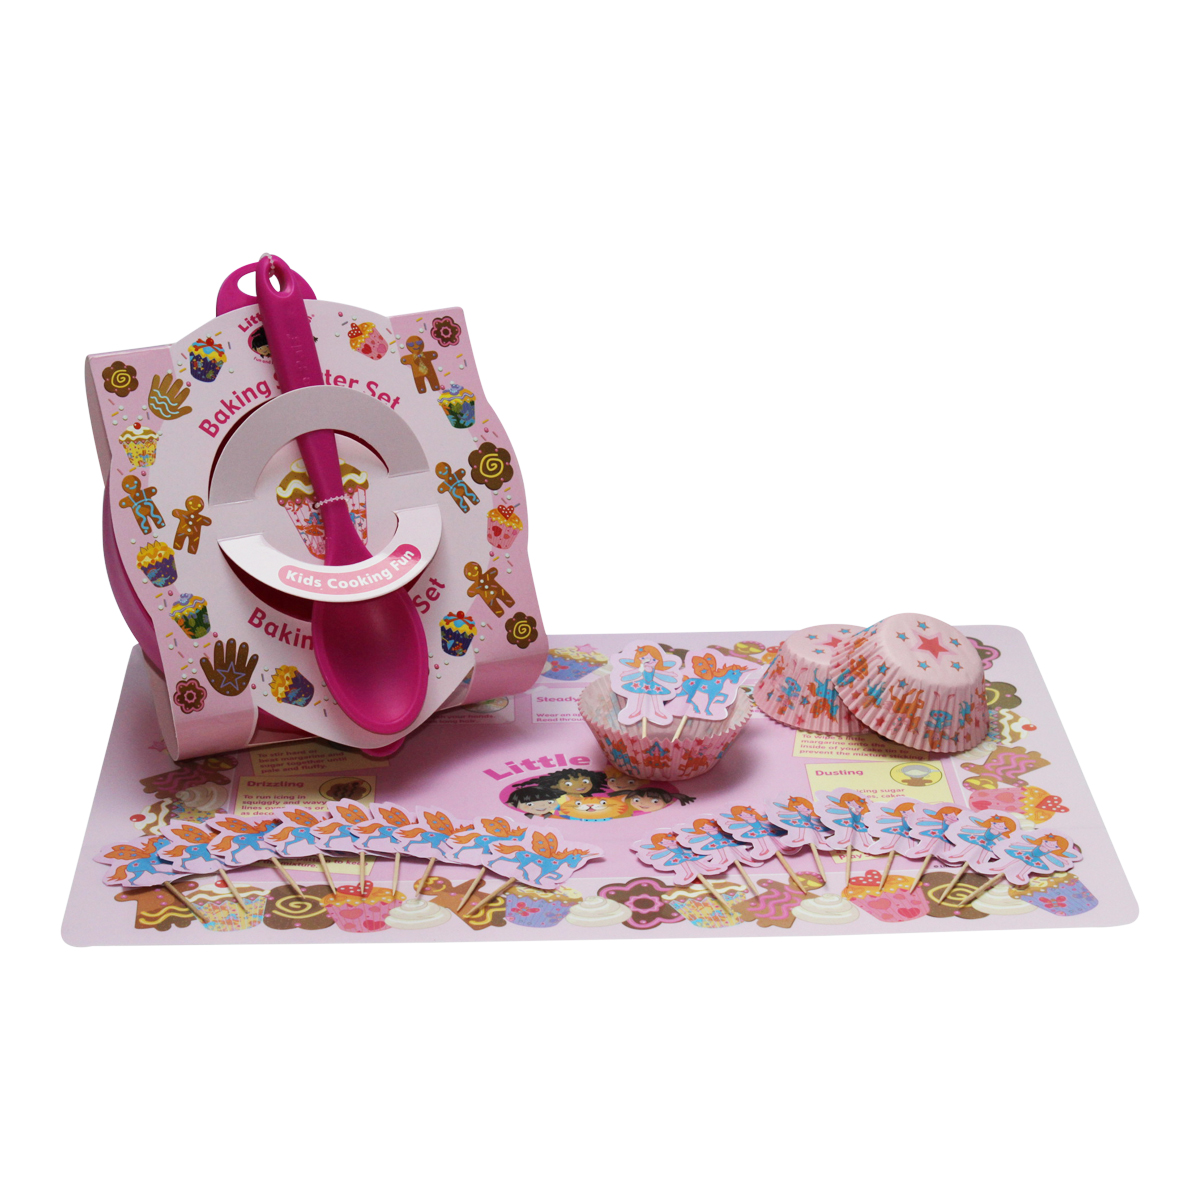 childrens baking starter set, pink